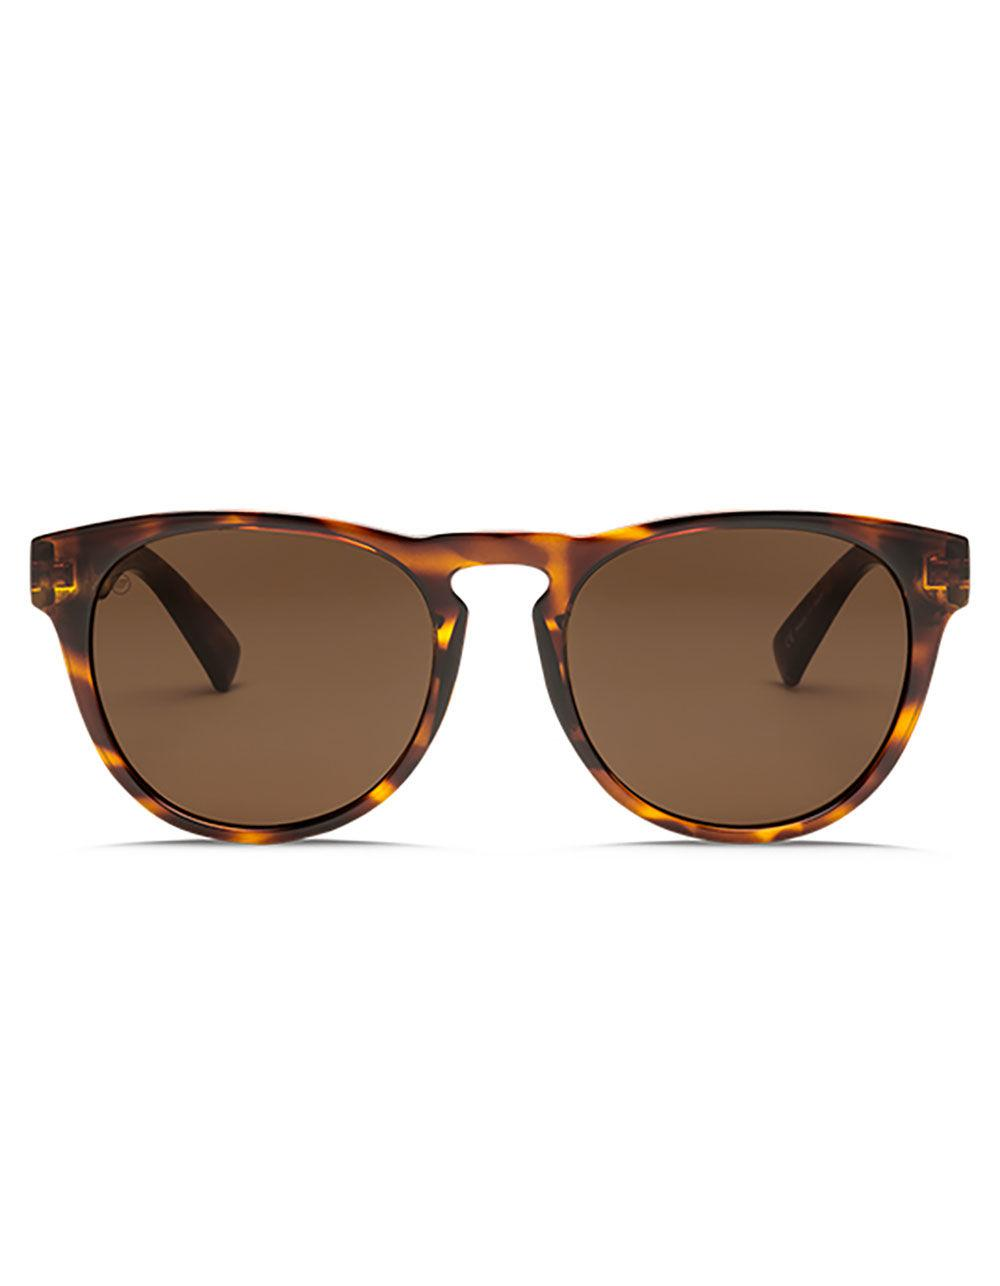 389987e7e7556 Lyst - Electric Nashville Xl Gloss Tortoise   Ohm Bronze Sunglasses in  Brown - Save 34%